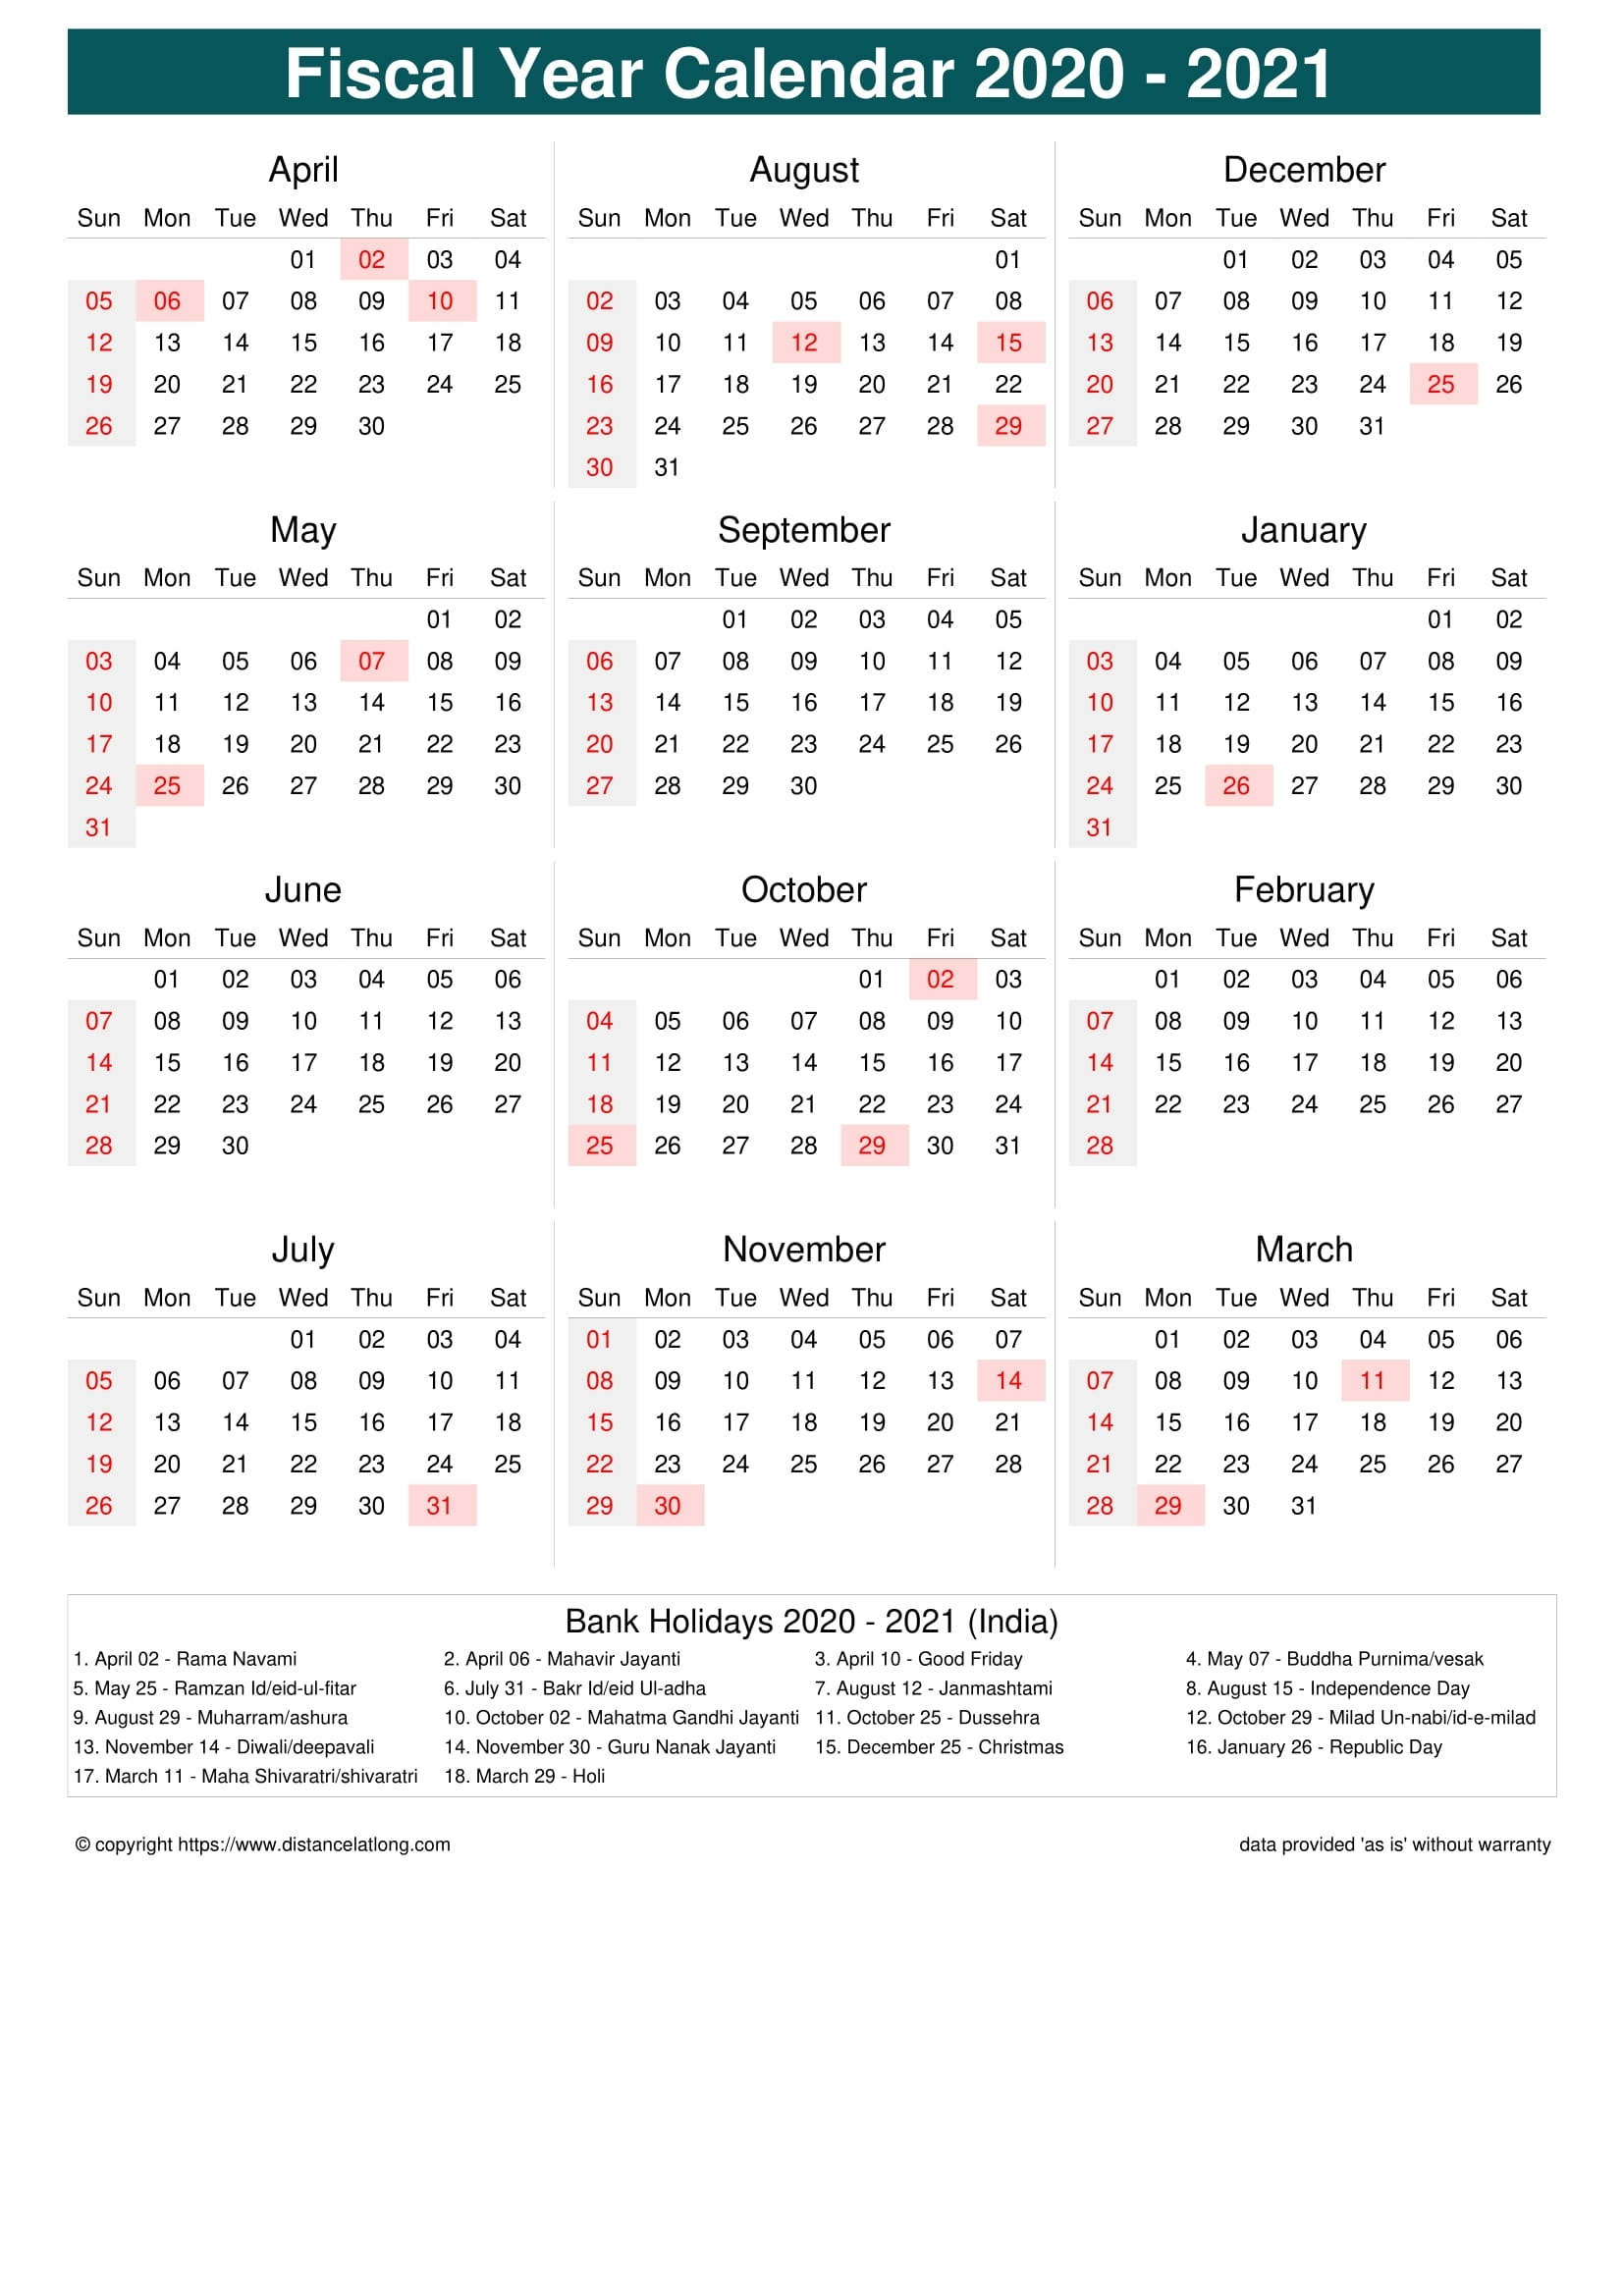 India Fiscal Year 2020-2021 Calendar Templates, Free